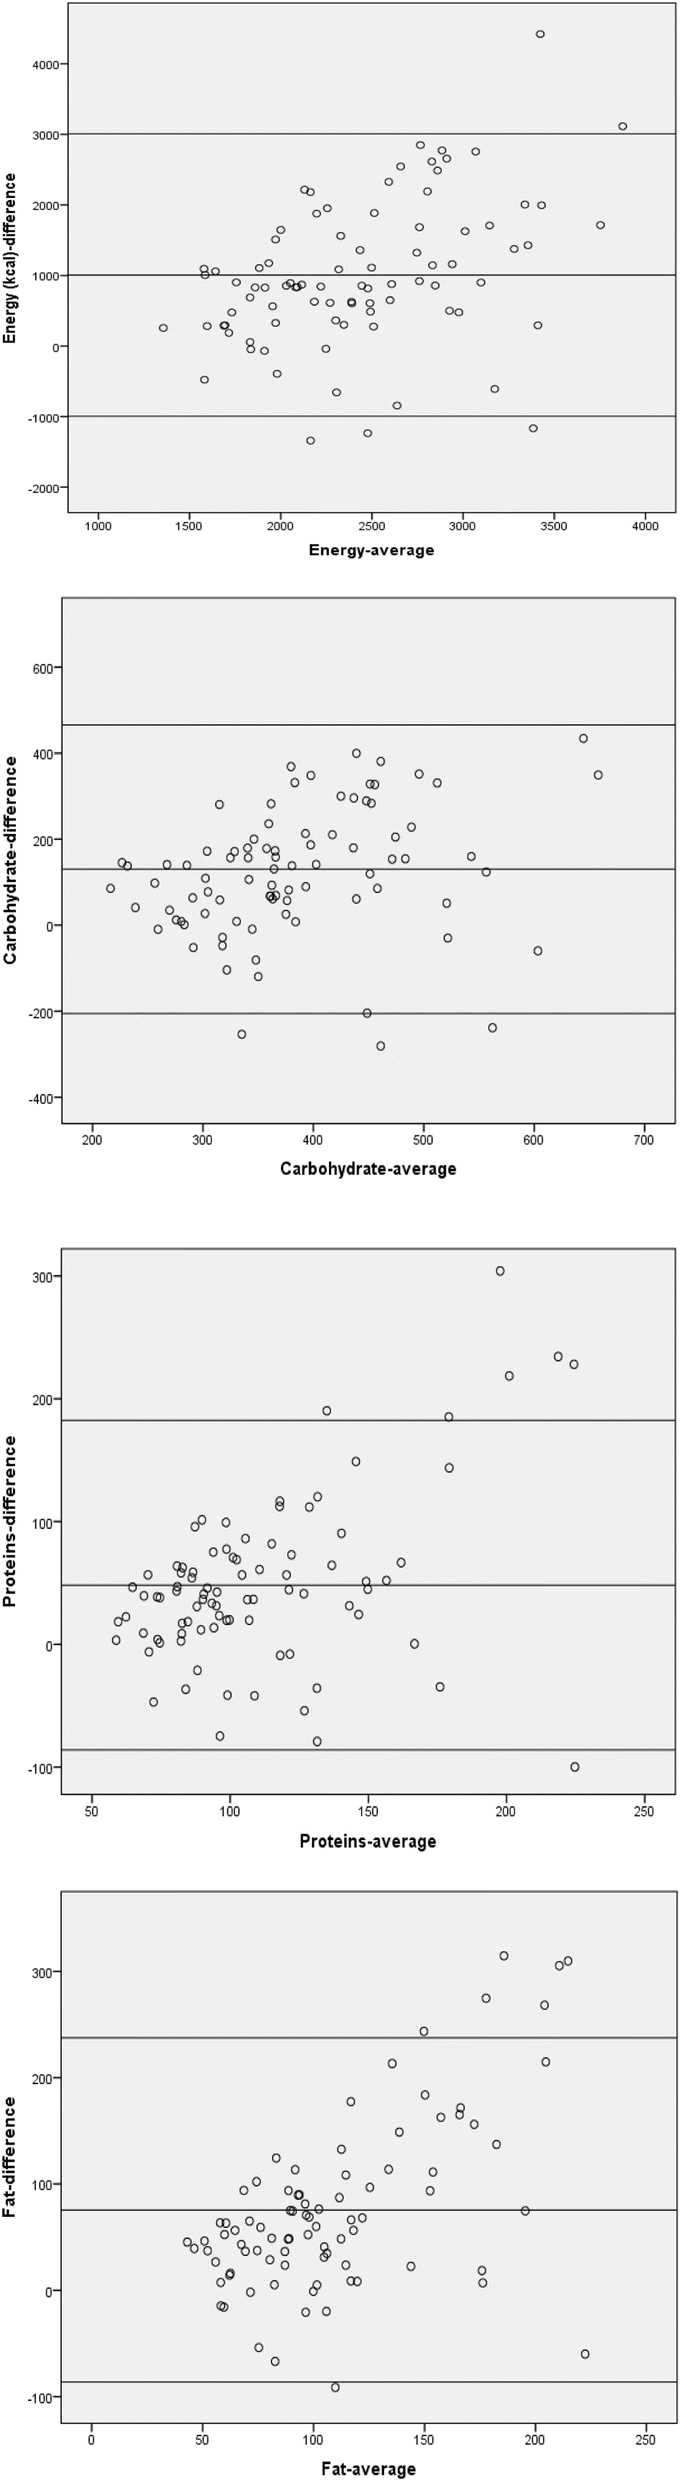 Adaptation and validation of a food frequency questionnaire (FFQ